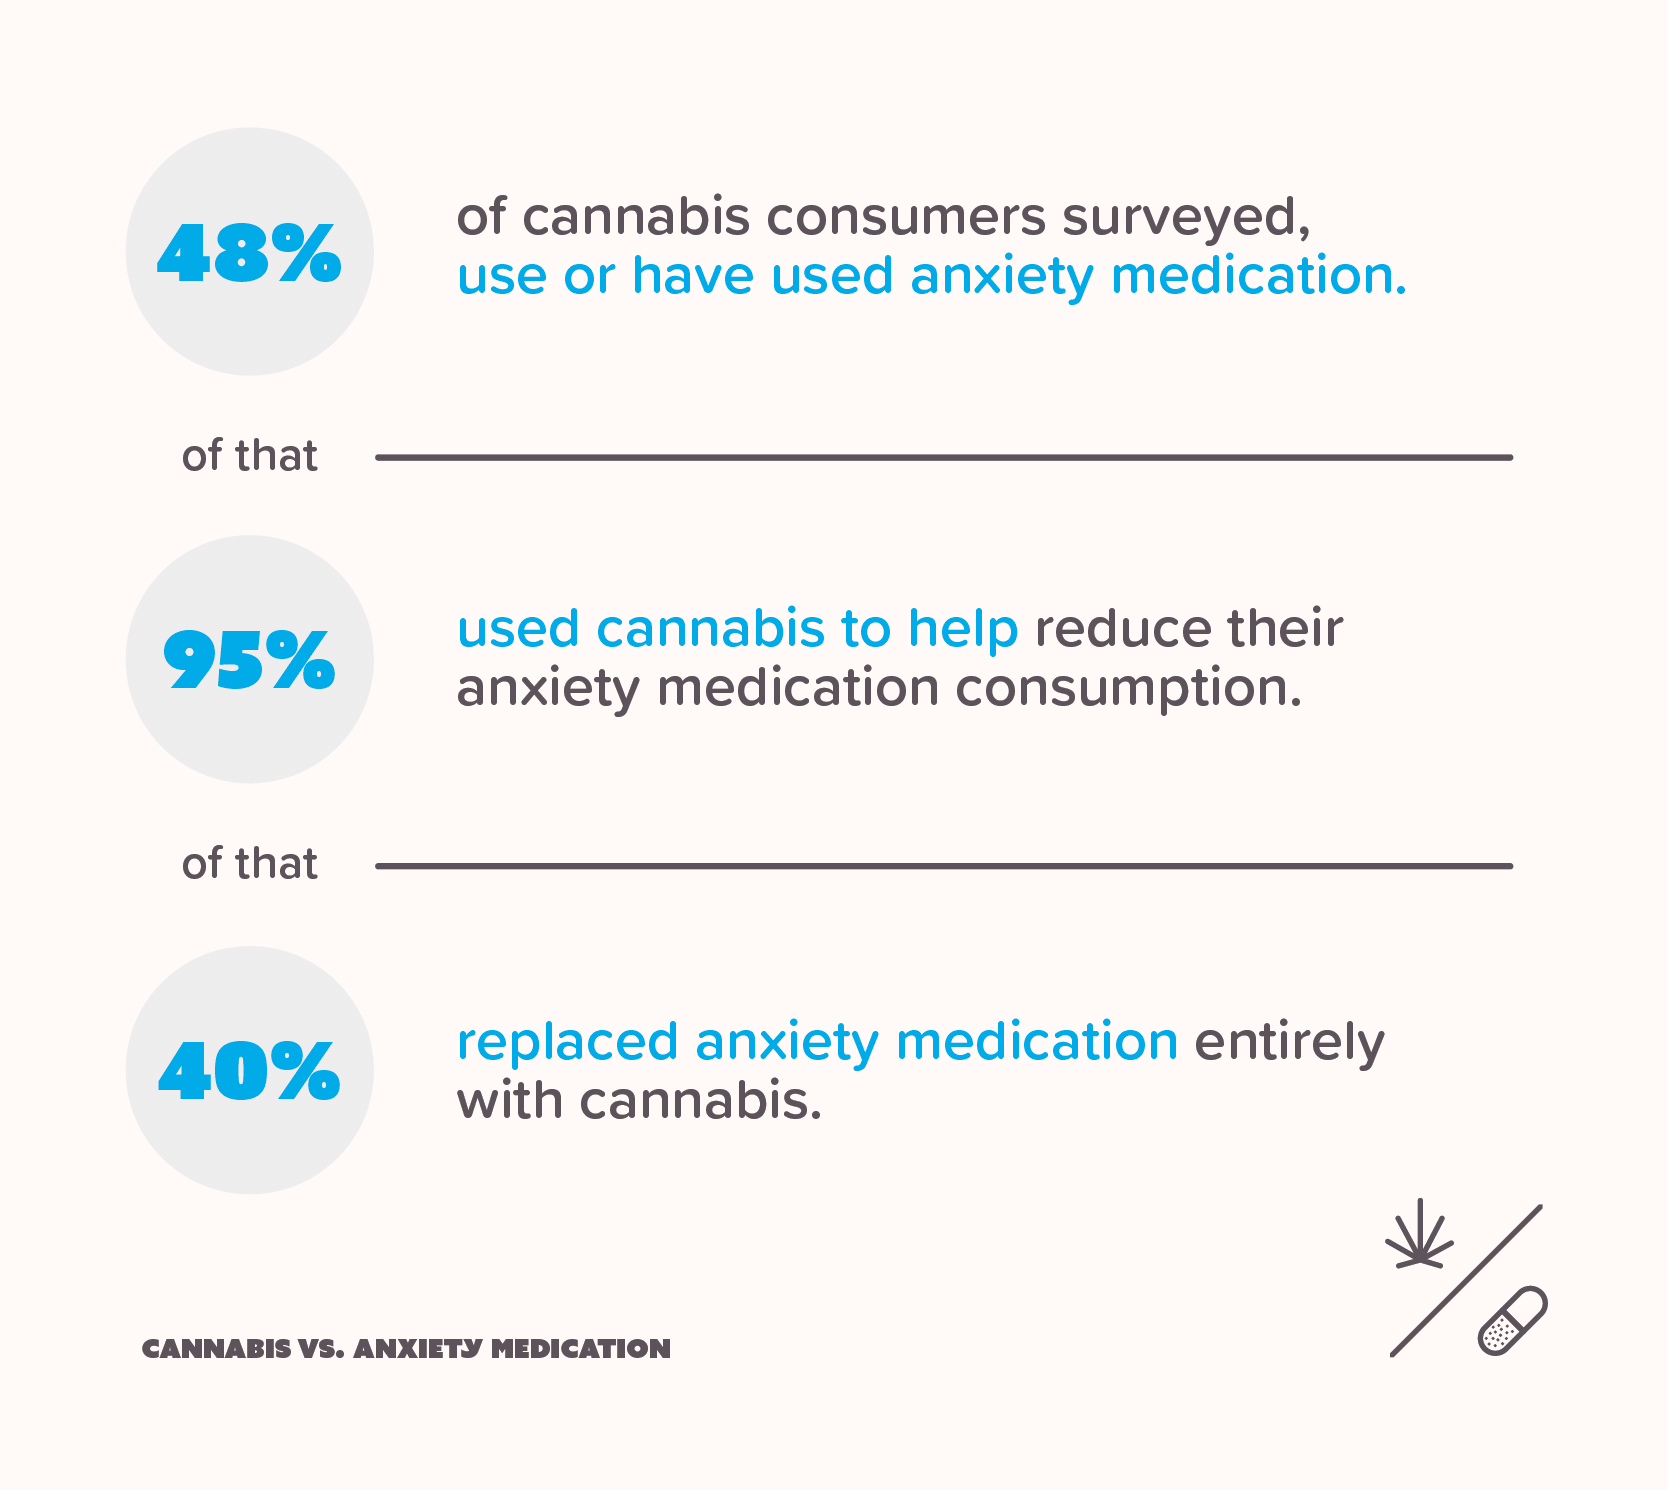 Infographic showing the percent of consumers who replace anxiety medication with marijuana